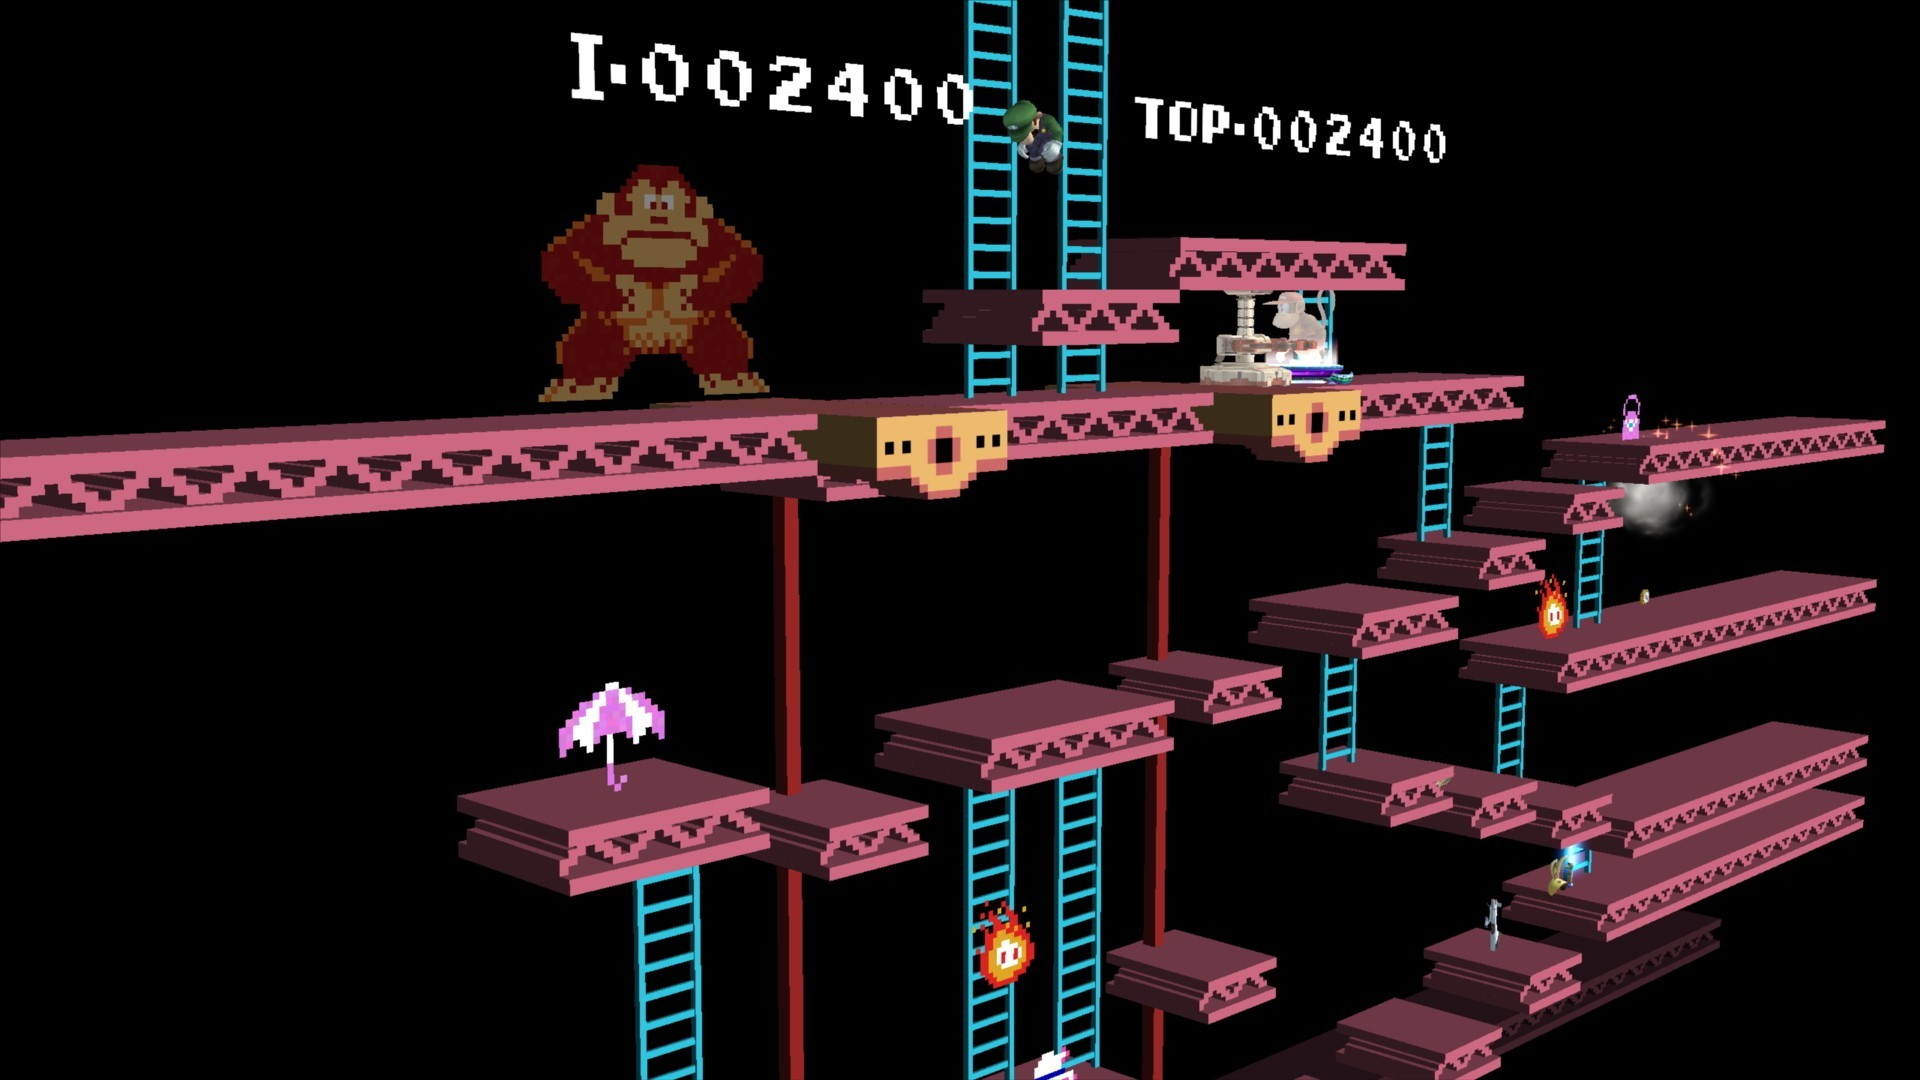 1920x1080 Donkey Kong Wallpapers | Just Good Vibe